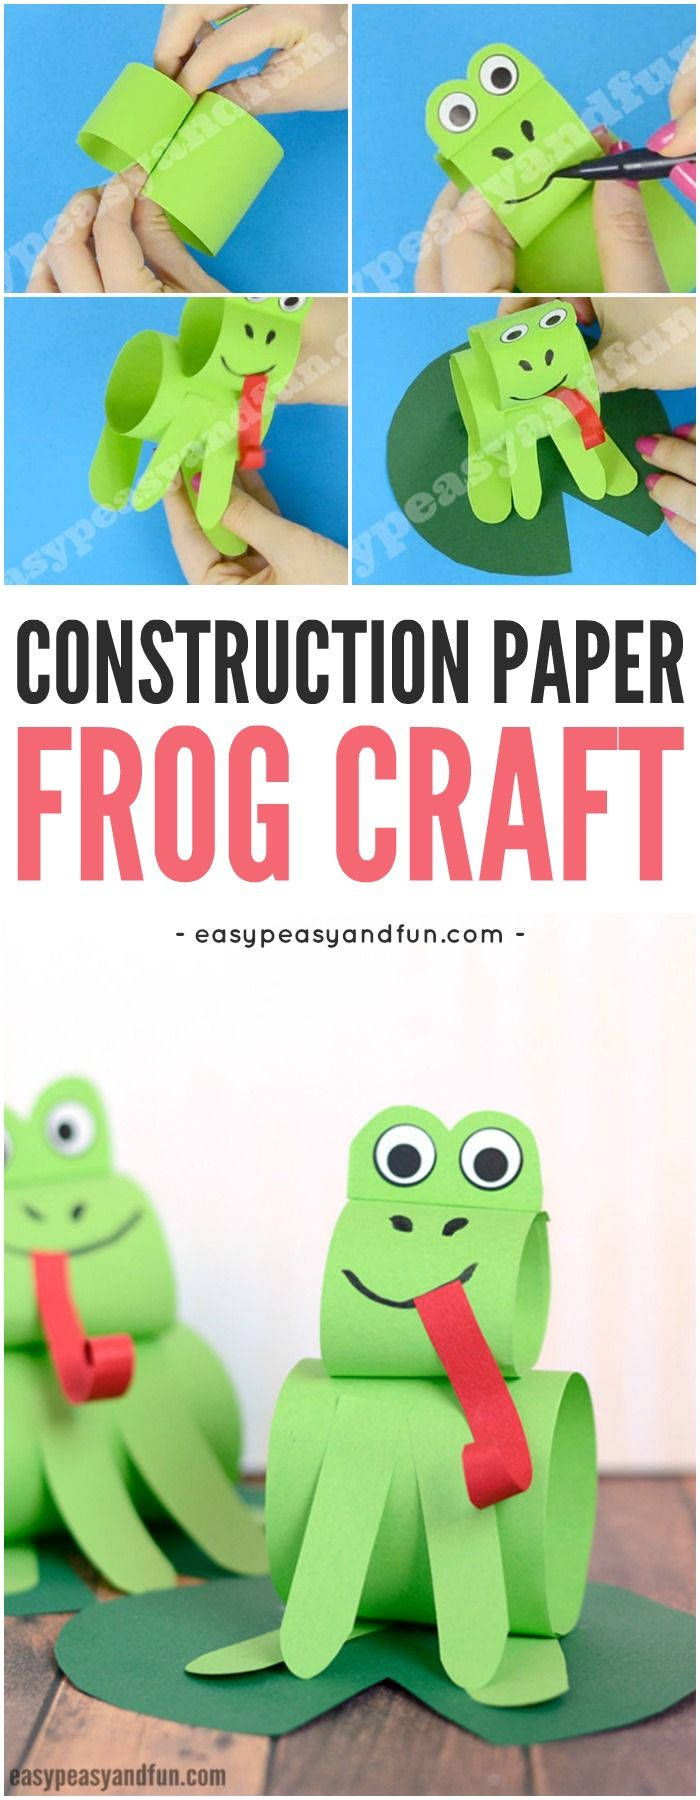 Paper Frog Craft for Kids. Fun Spring Craft Idea for Kids to Make. #papercraftsforkids #frogcrafts #Springcraftsforkids